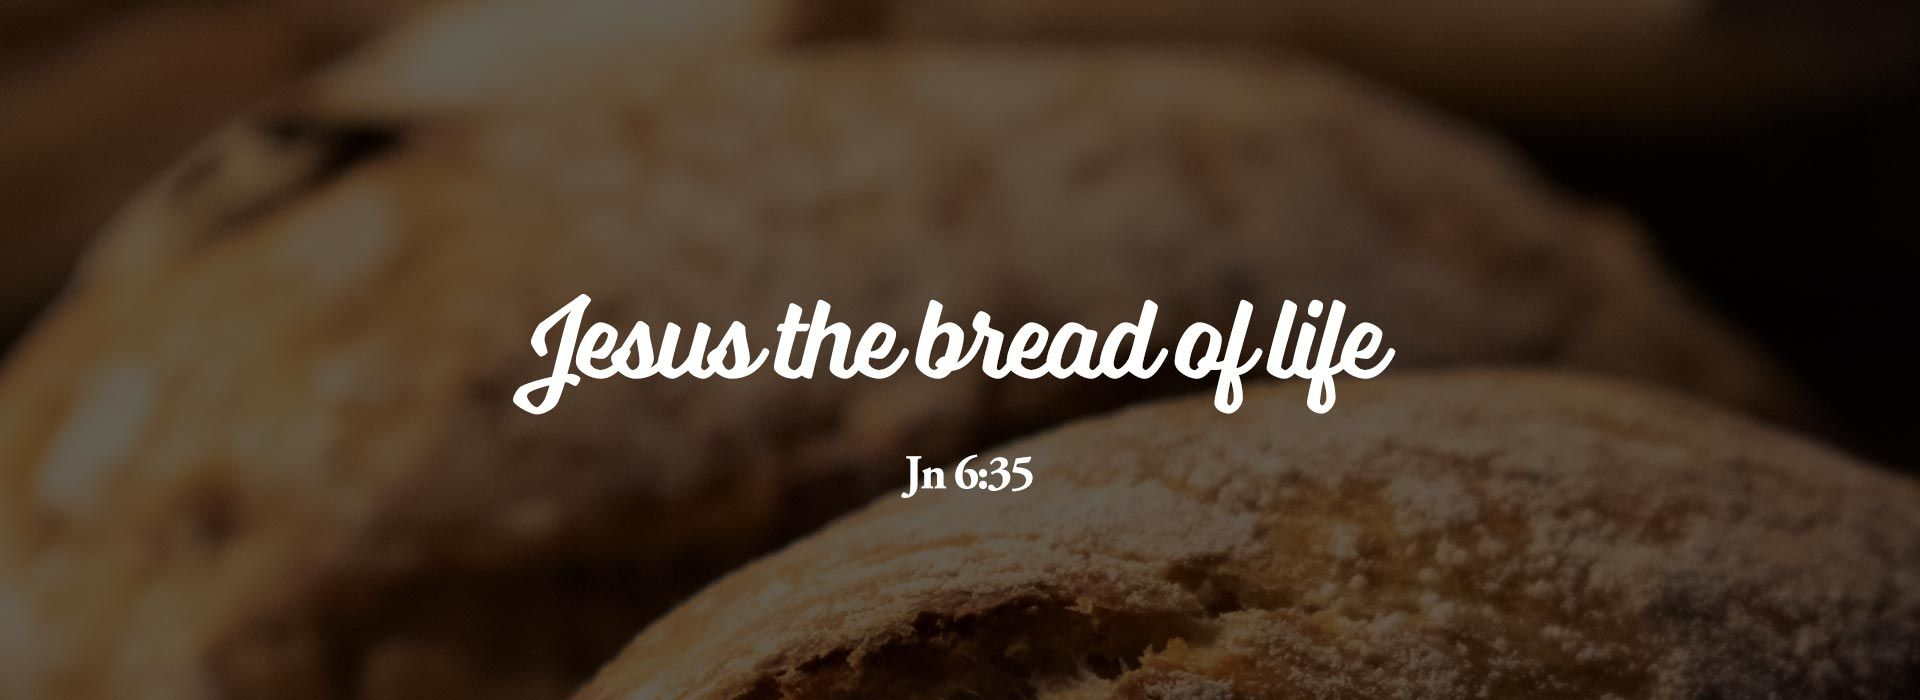 Eighteenth Sunday in Ordinary Time (1st August 2021)